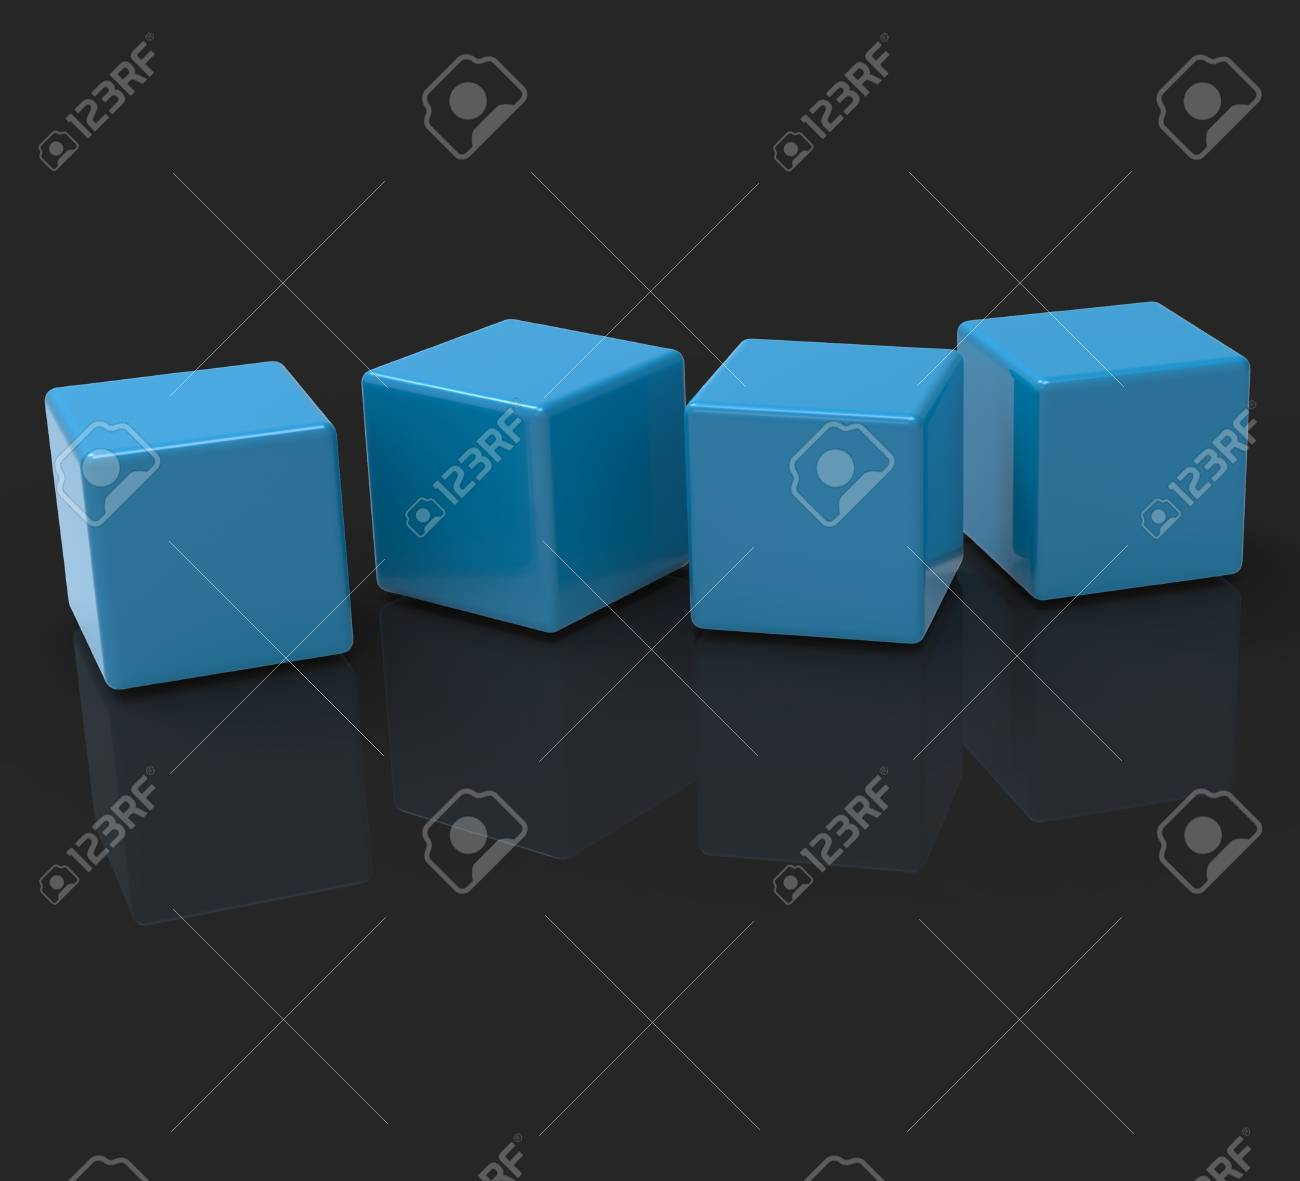 Four Blank Blocks Showing Copyspace For 4 Letter Word Stock Photo